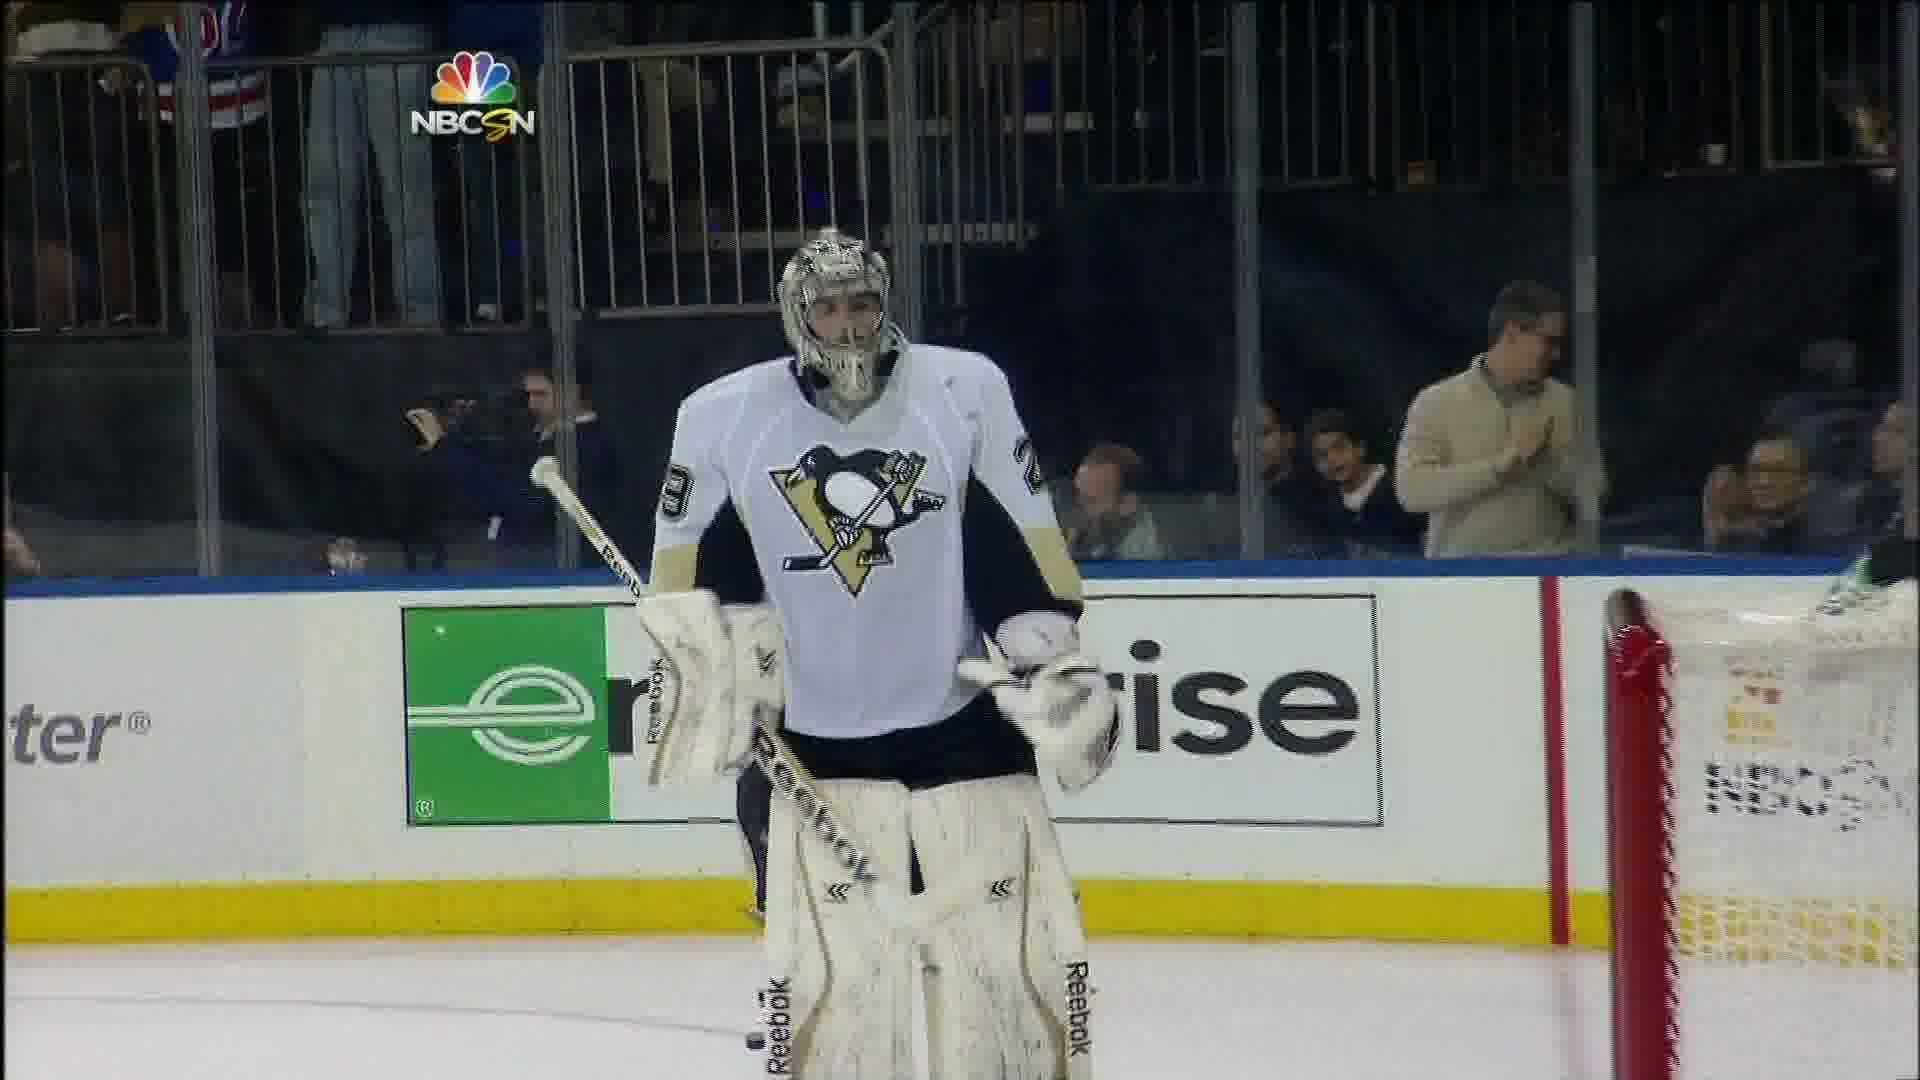 Marc-Andre Fleury surrendered 5 goals in a road loss to the New York Rangers.